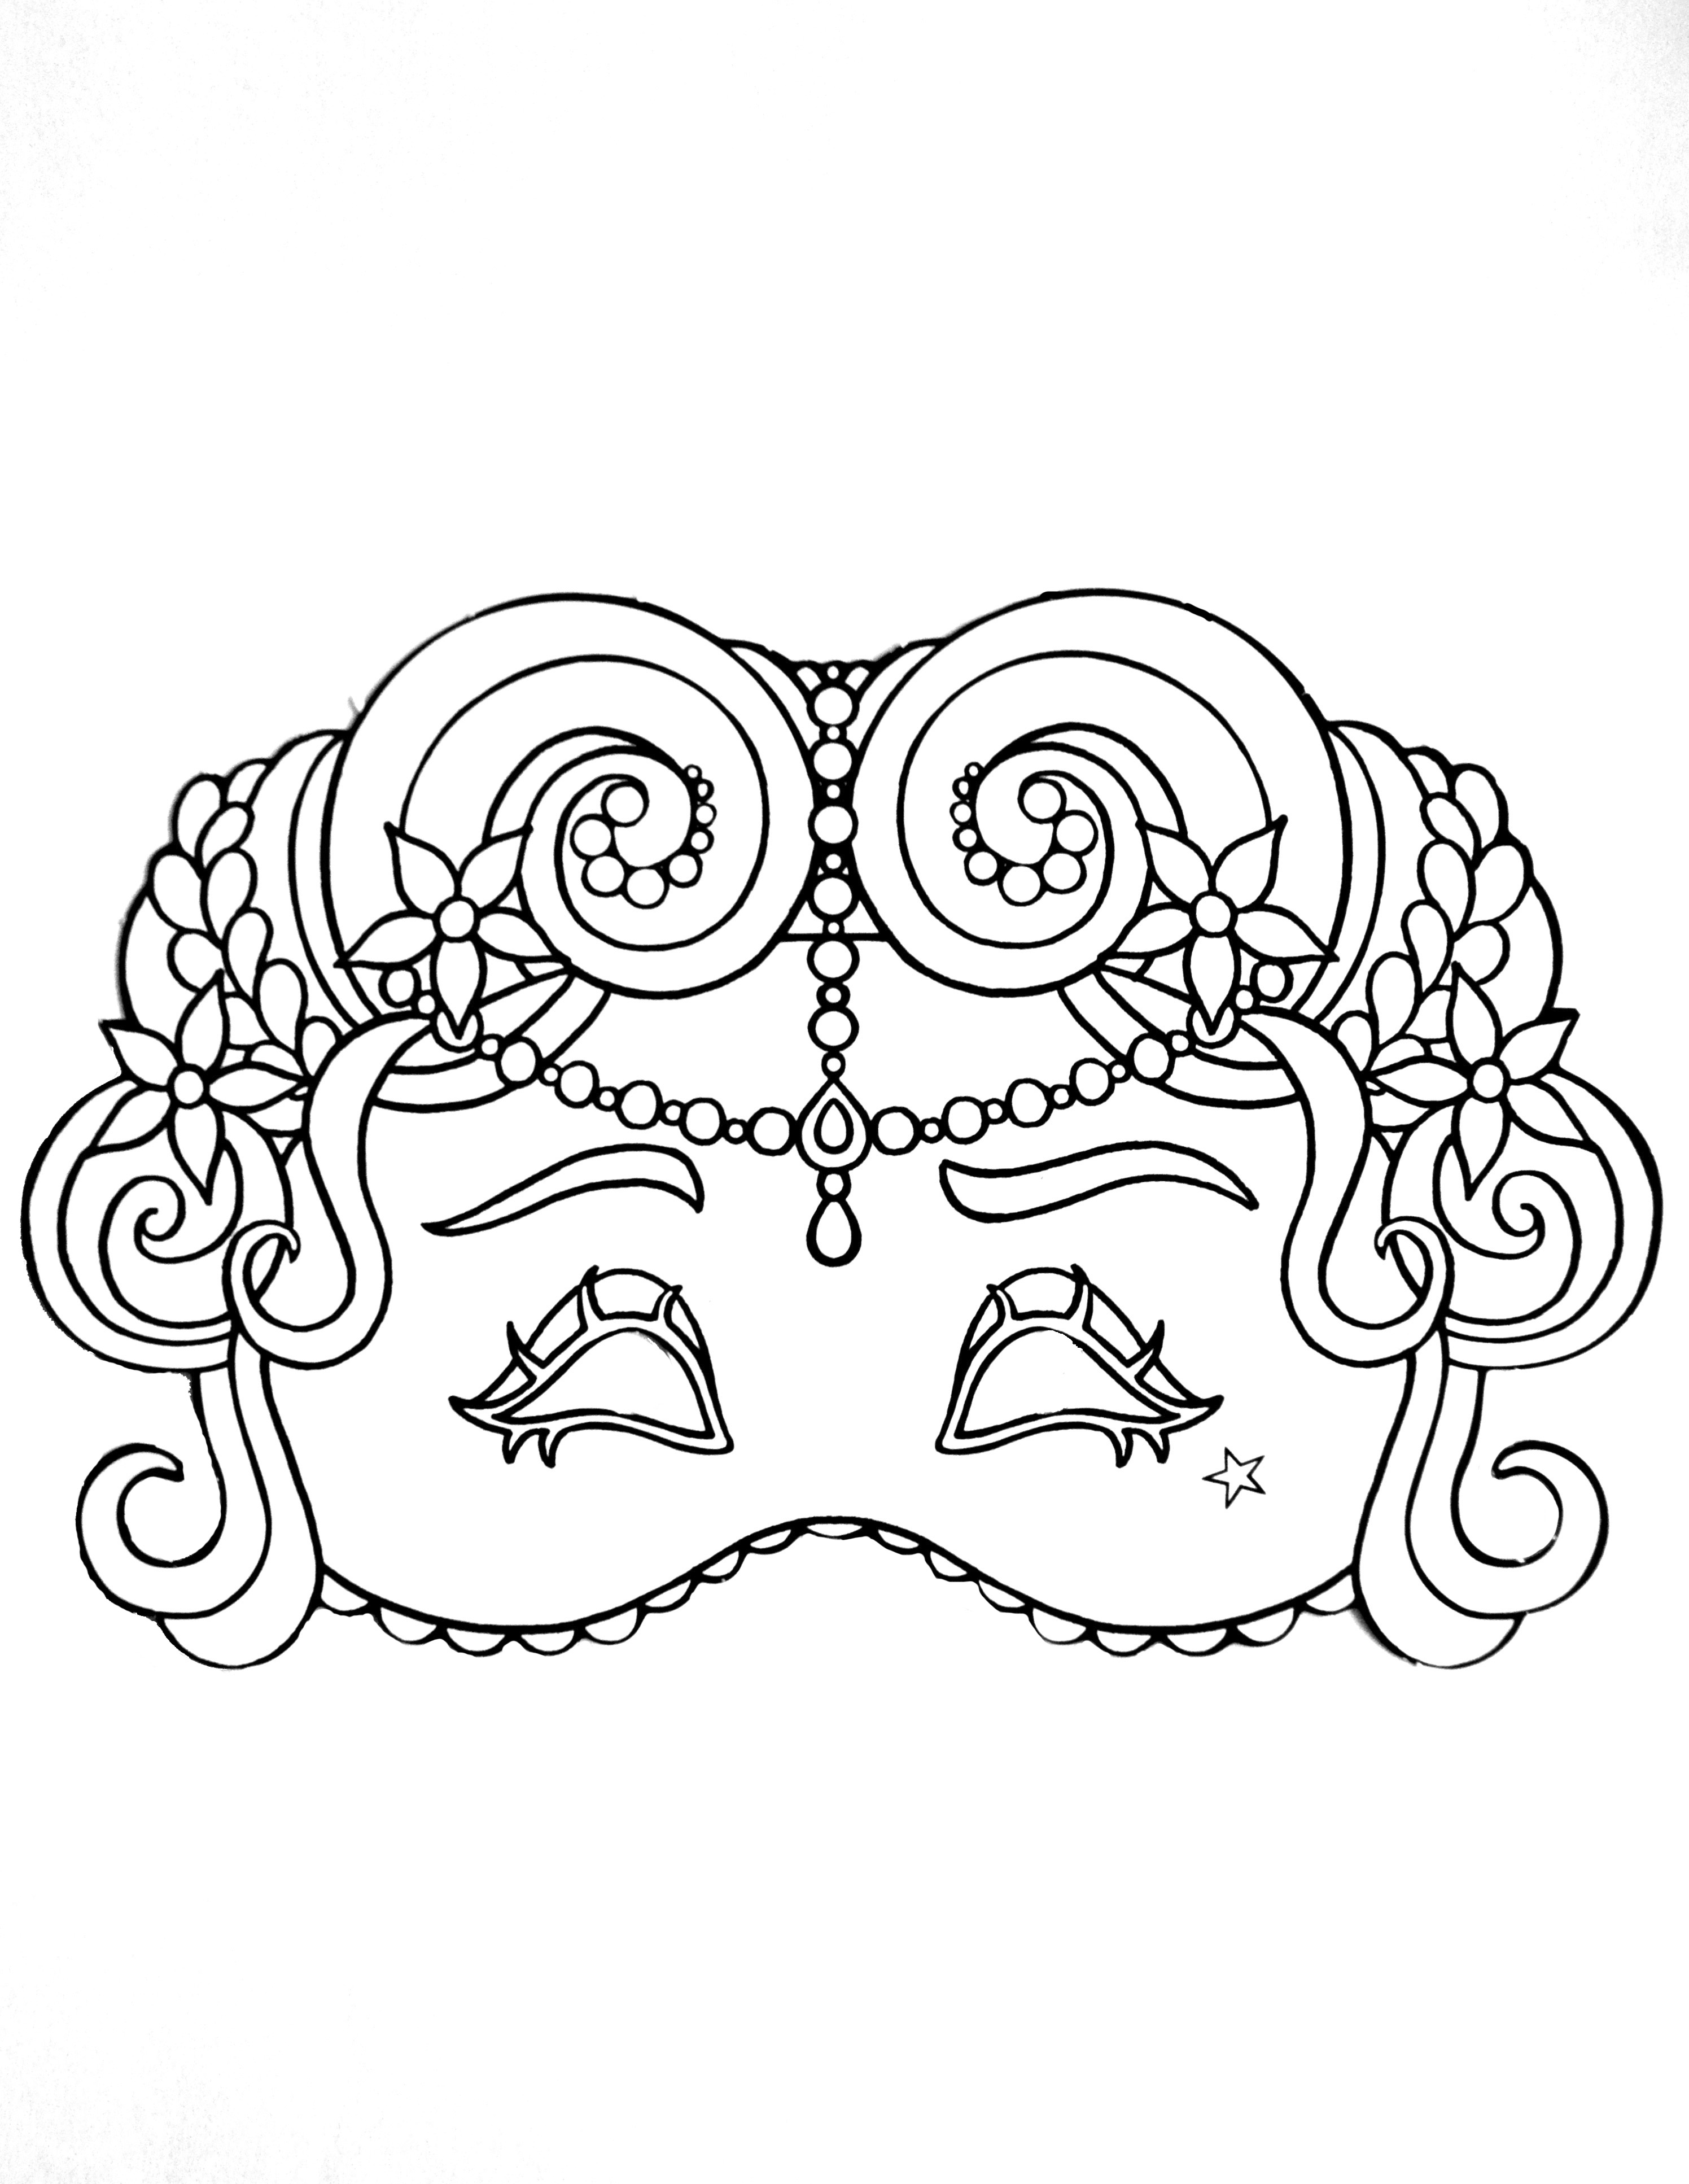 carnival mask for kid 1 masks coloring pages for kids to print color